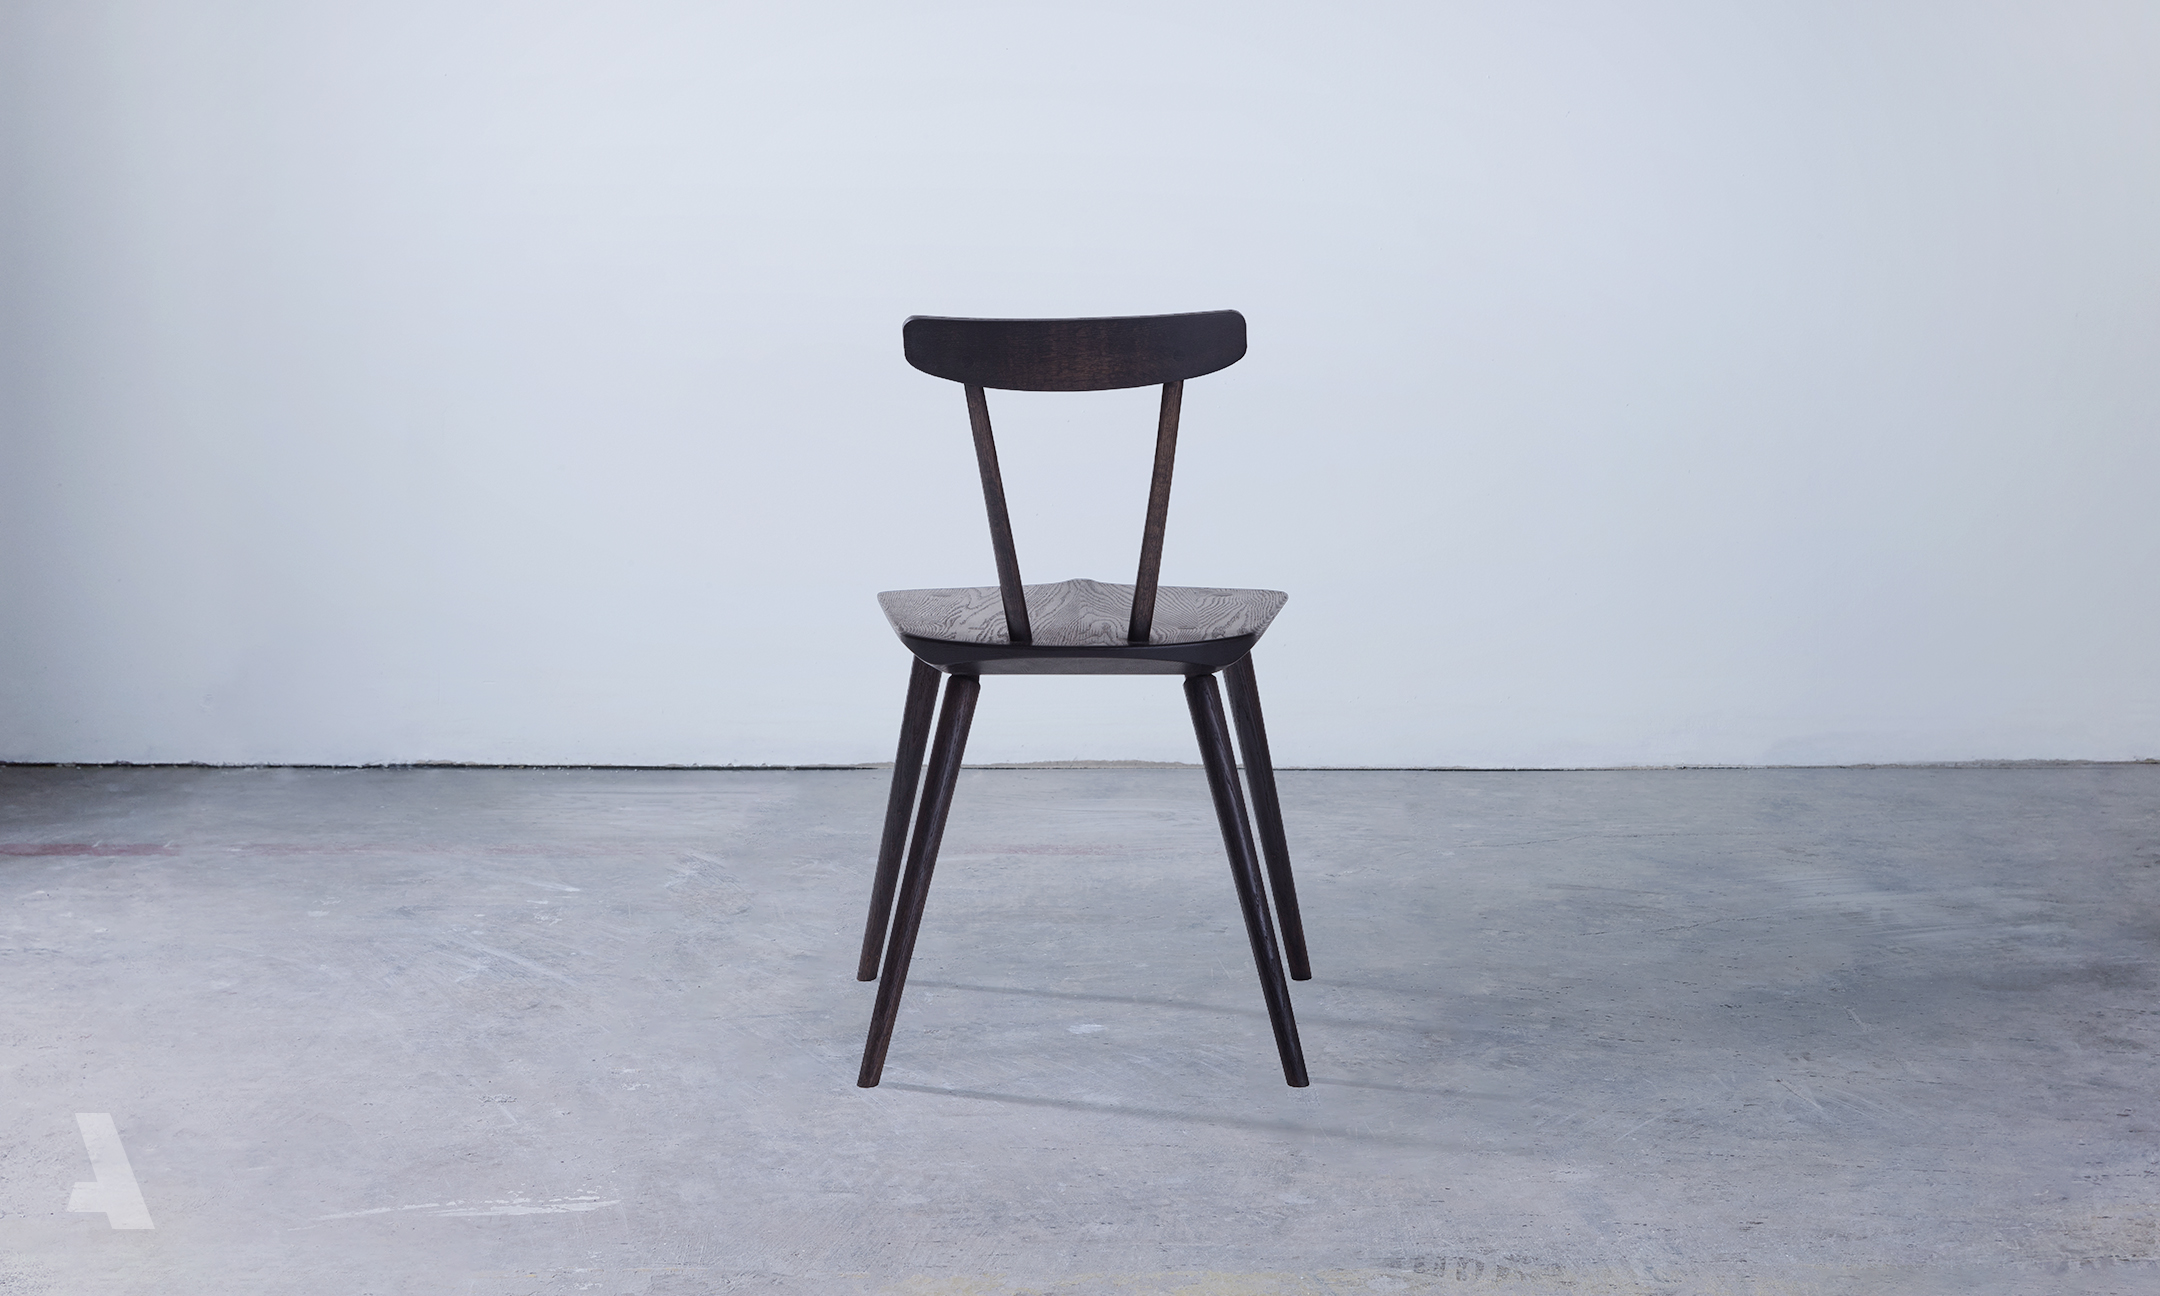 Gallery_Chair_0008_Chair-009.jpg